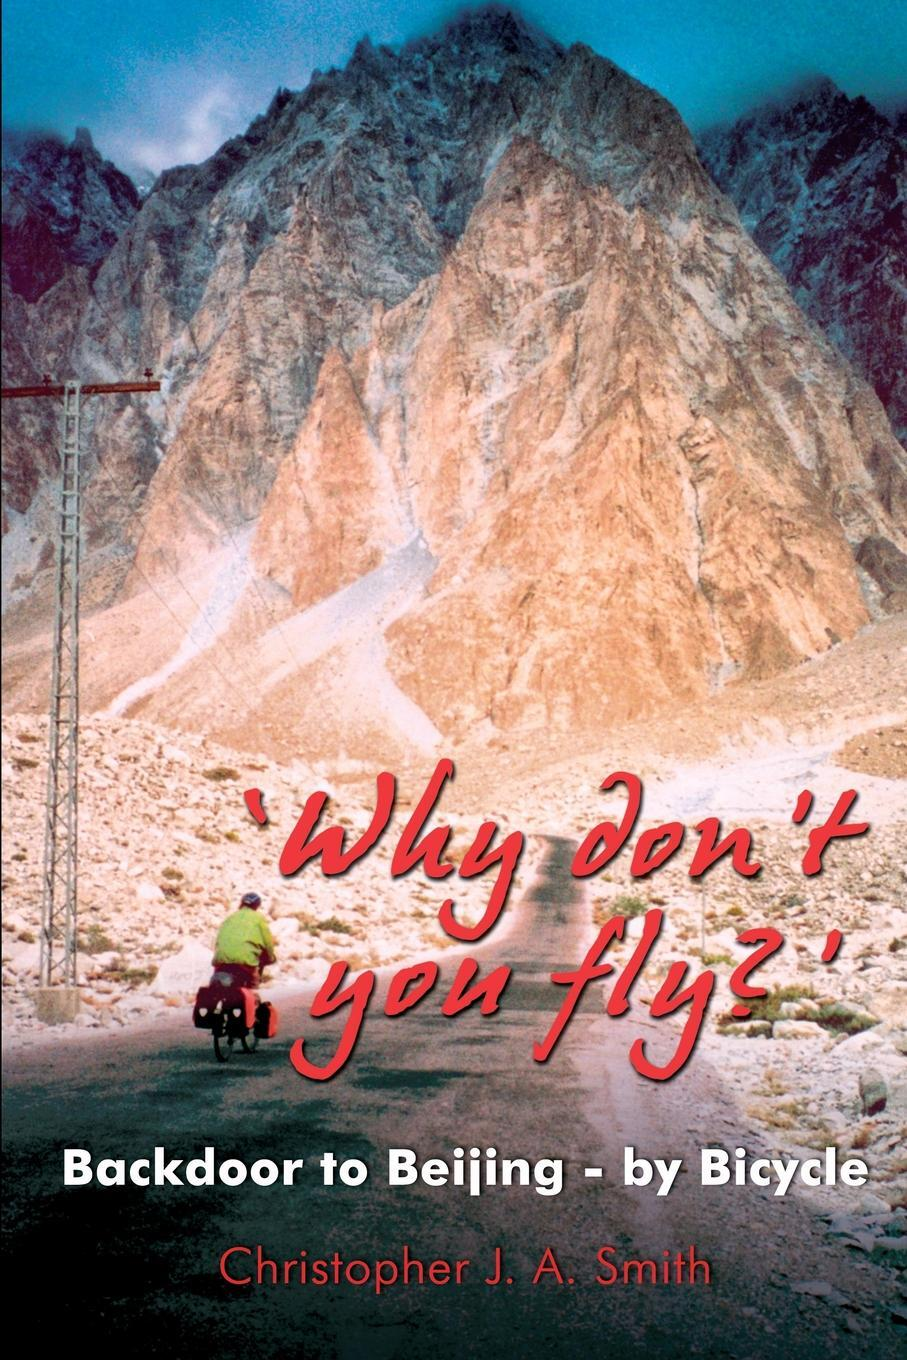 Christopher J.A. Smith. 'Why Don't You Fly?' Back Door to Beijing - by Bicycle